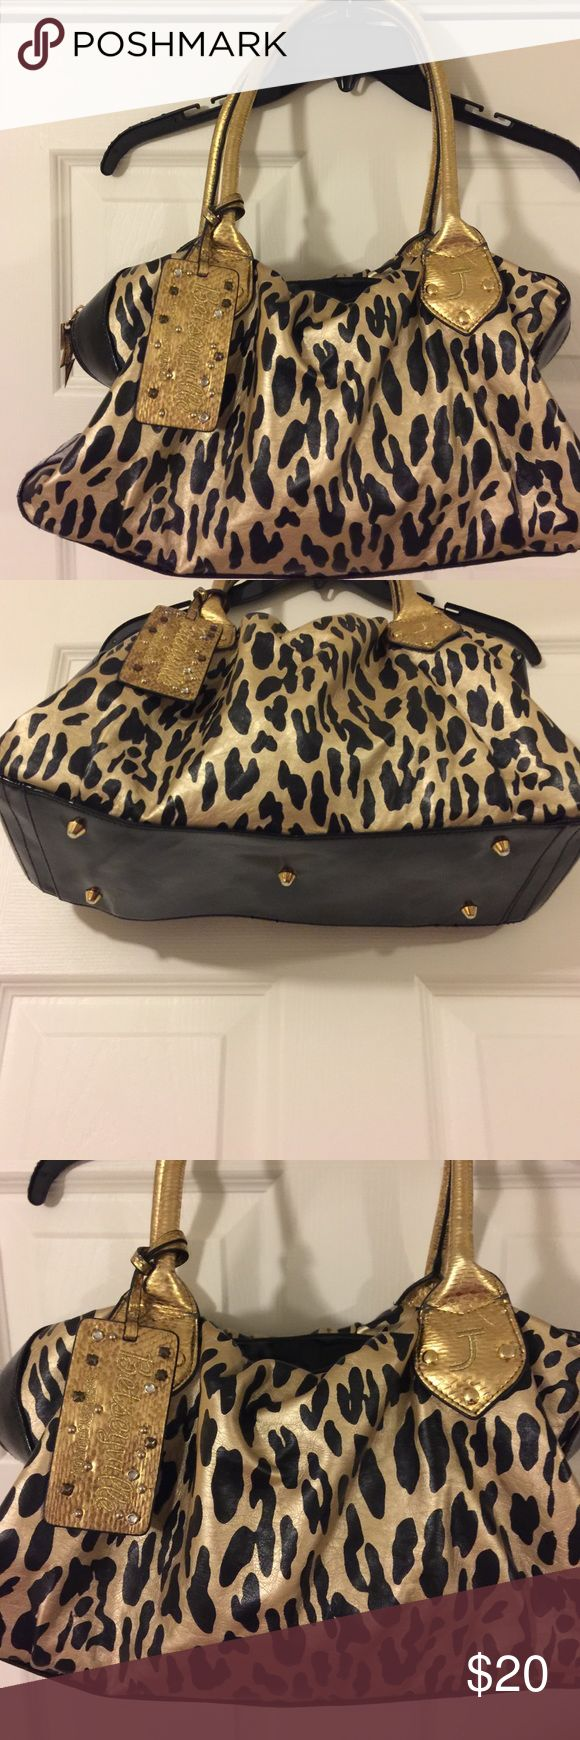 Betsey Johnson Leopard purse Beautiful Betsey Johnson purse! This is a classic purse, never goes out of style! Perfect for late night outings to bars. Betsey Johnson Bags